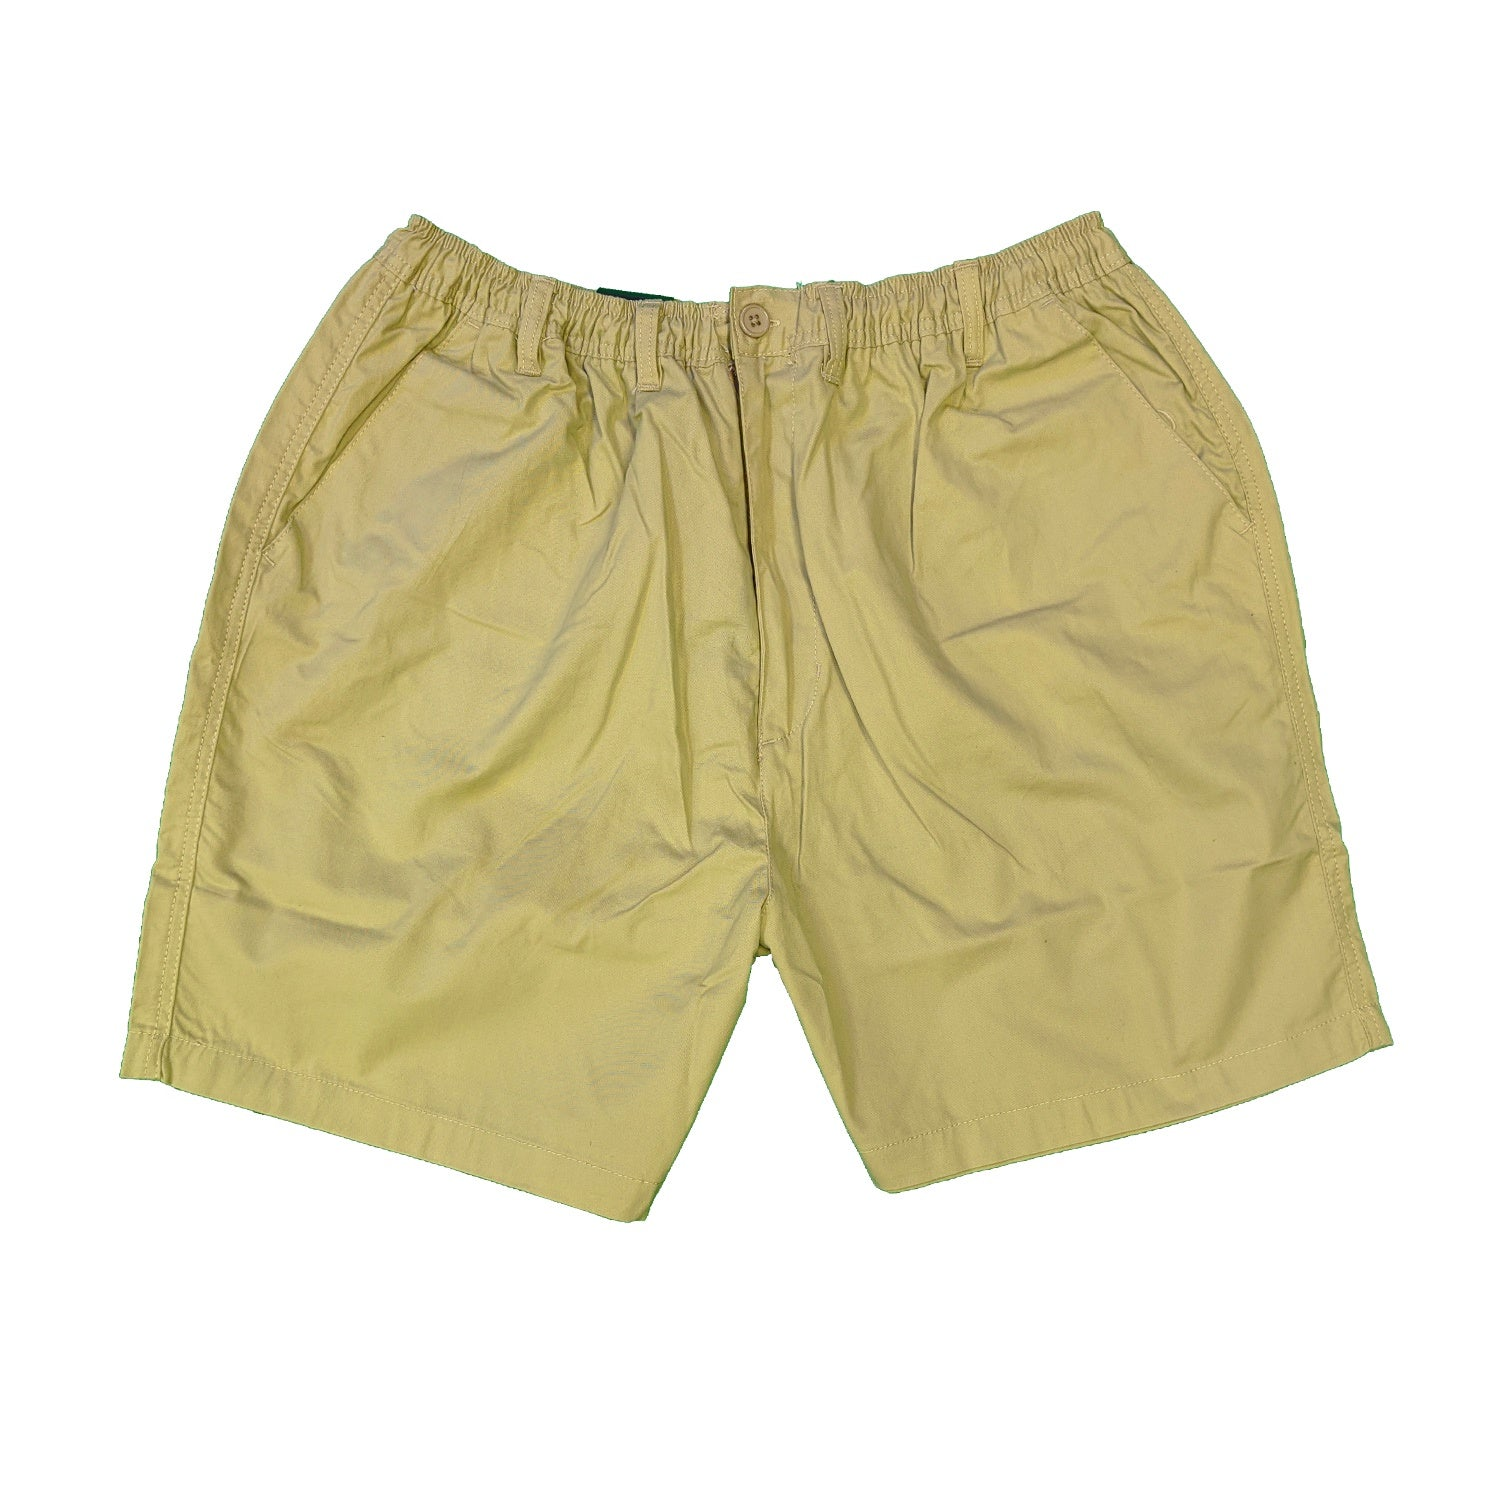 Espionage Rugby Shorts - ST019 - Sand 1